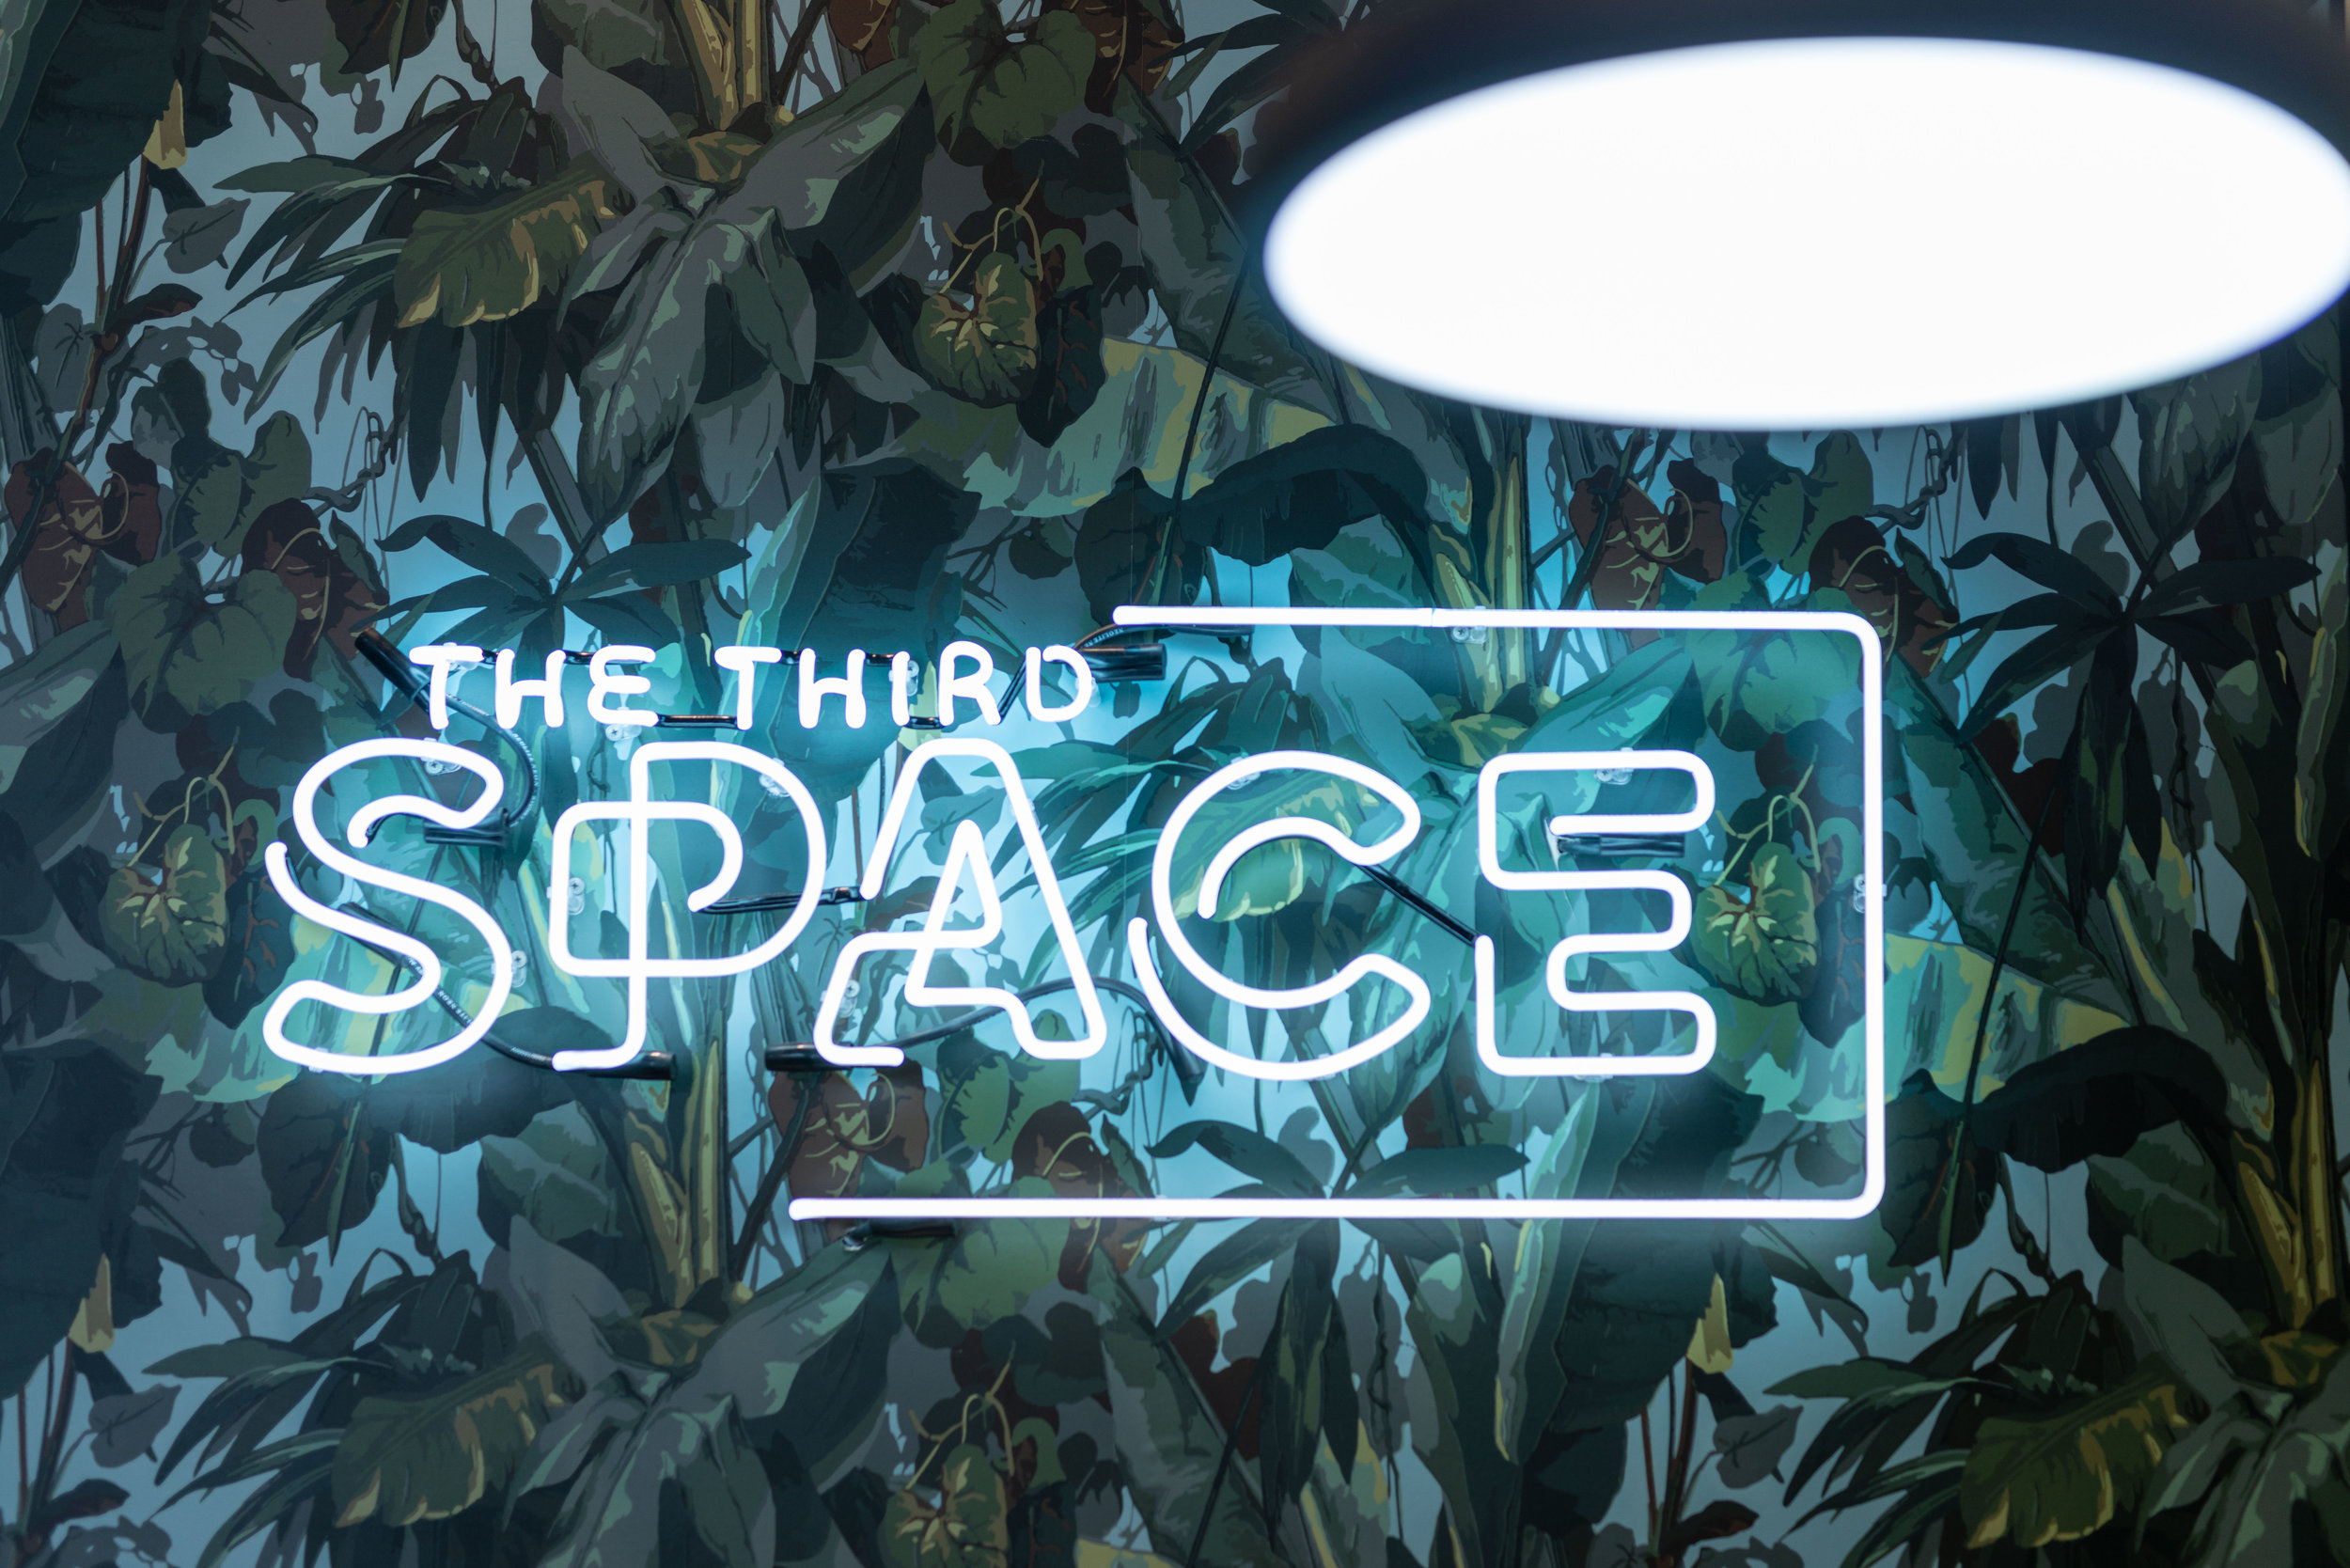 The Third Space - 0466 830 456Shop 242-243, Target MallOrion Springfield Central, 1 Main StreetSpringfield Central QLD 4300